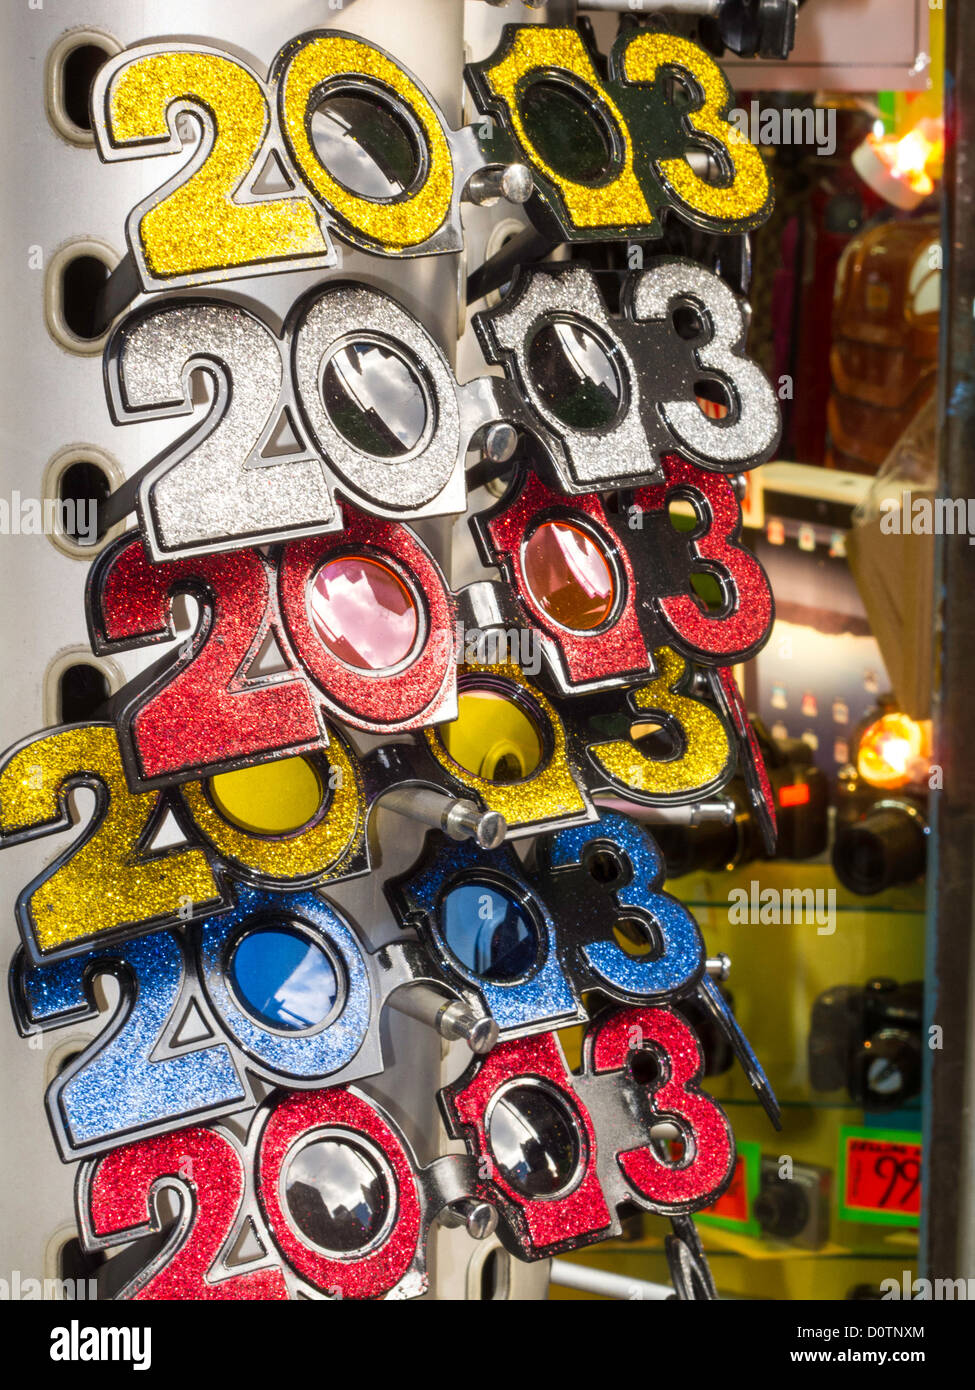 2013 happy new year novelty glasses souvenir shop nyc